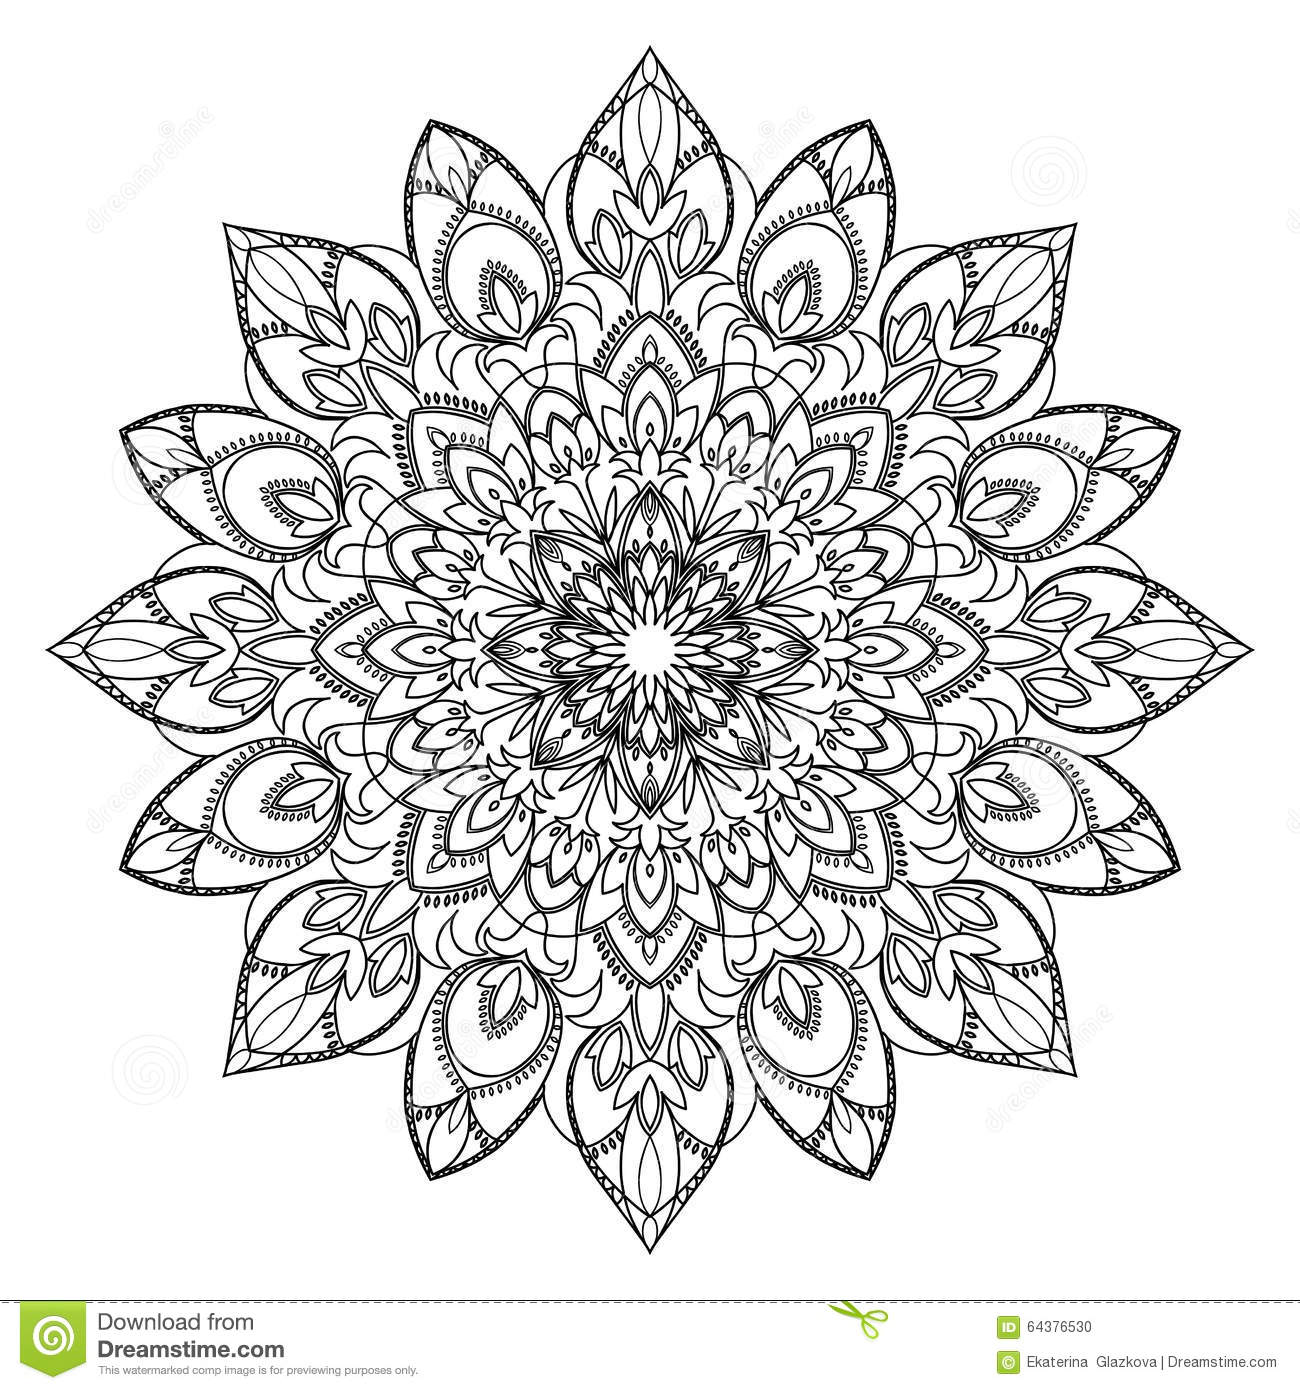 Abstract Circle Coloring Pages : Abstract circle ornament stock vector image of floral